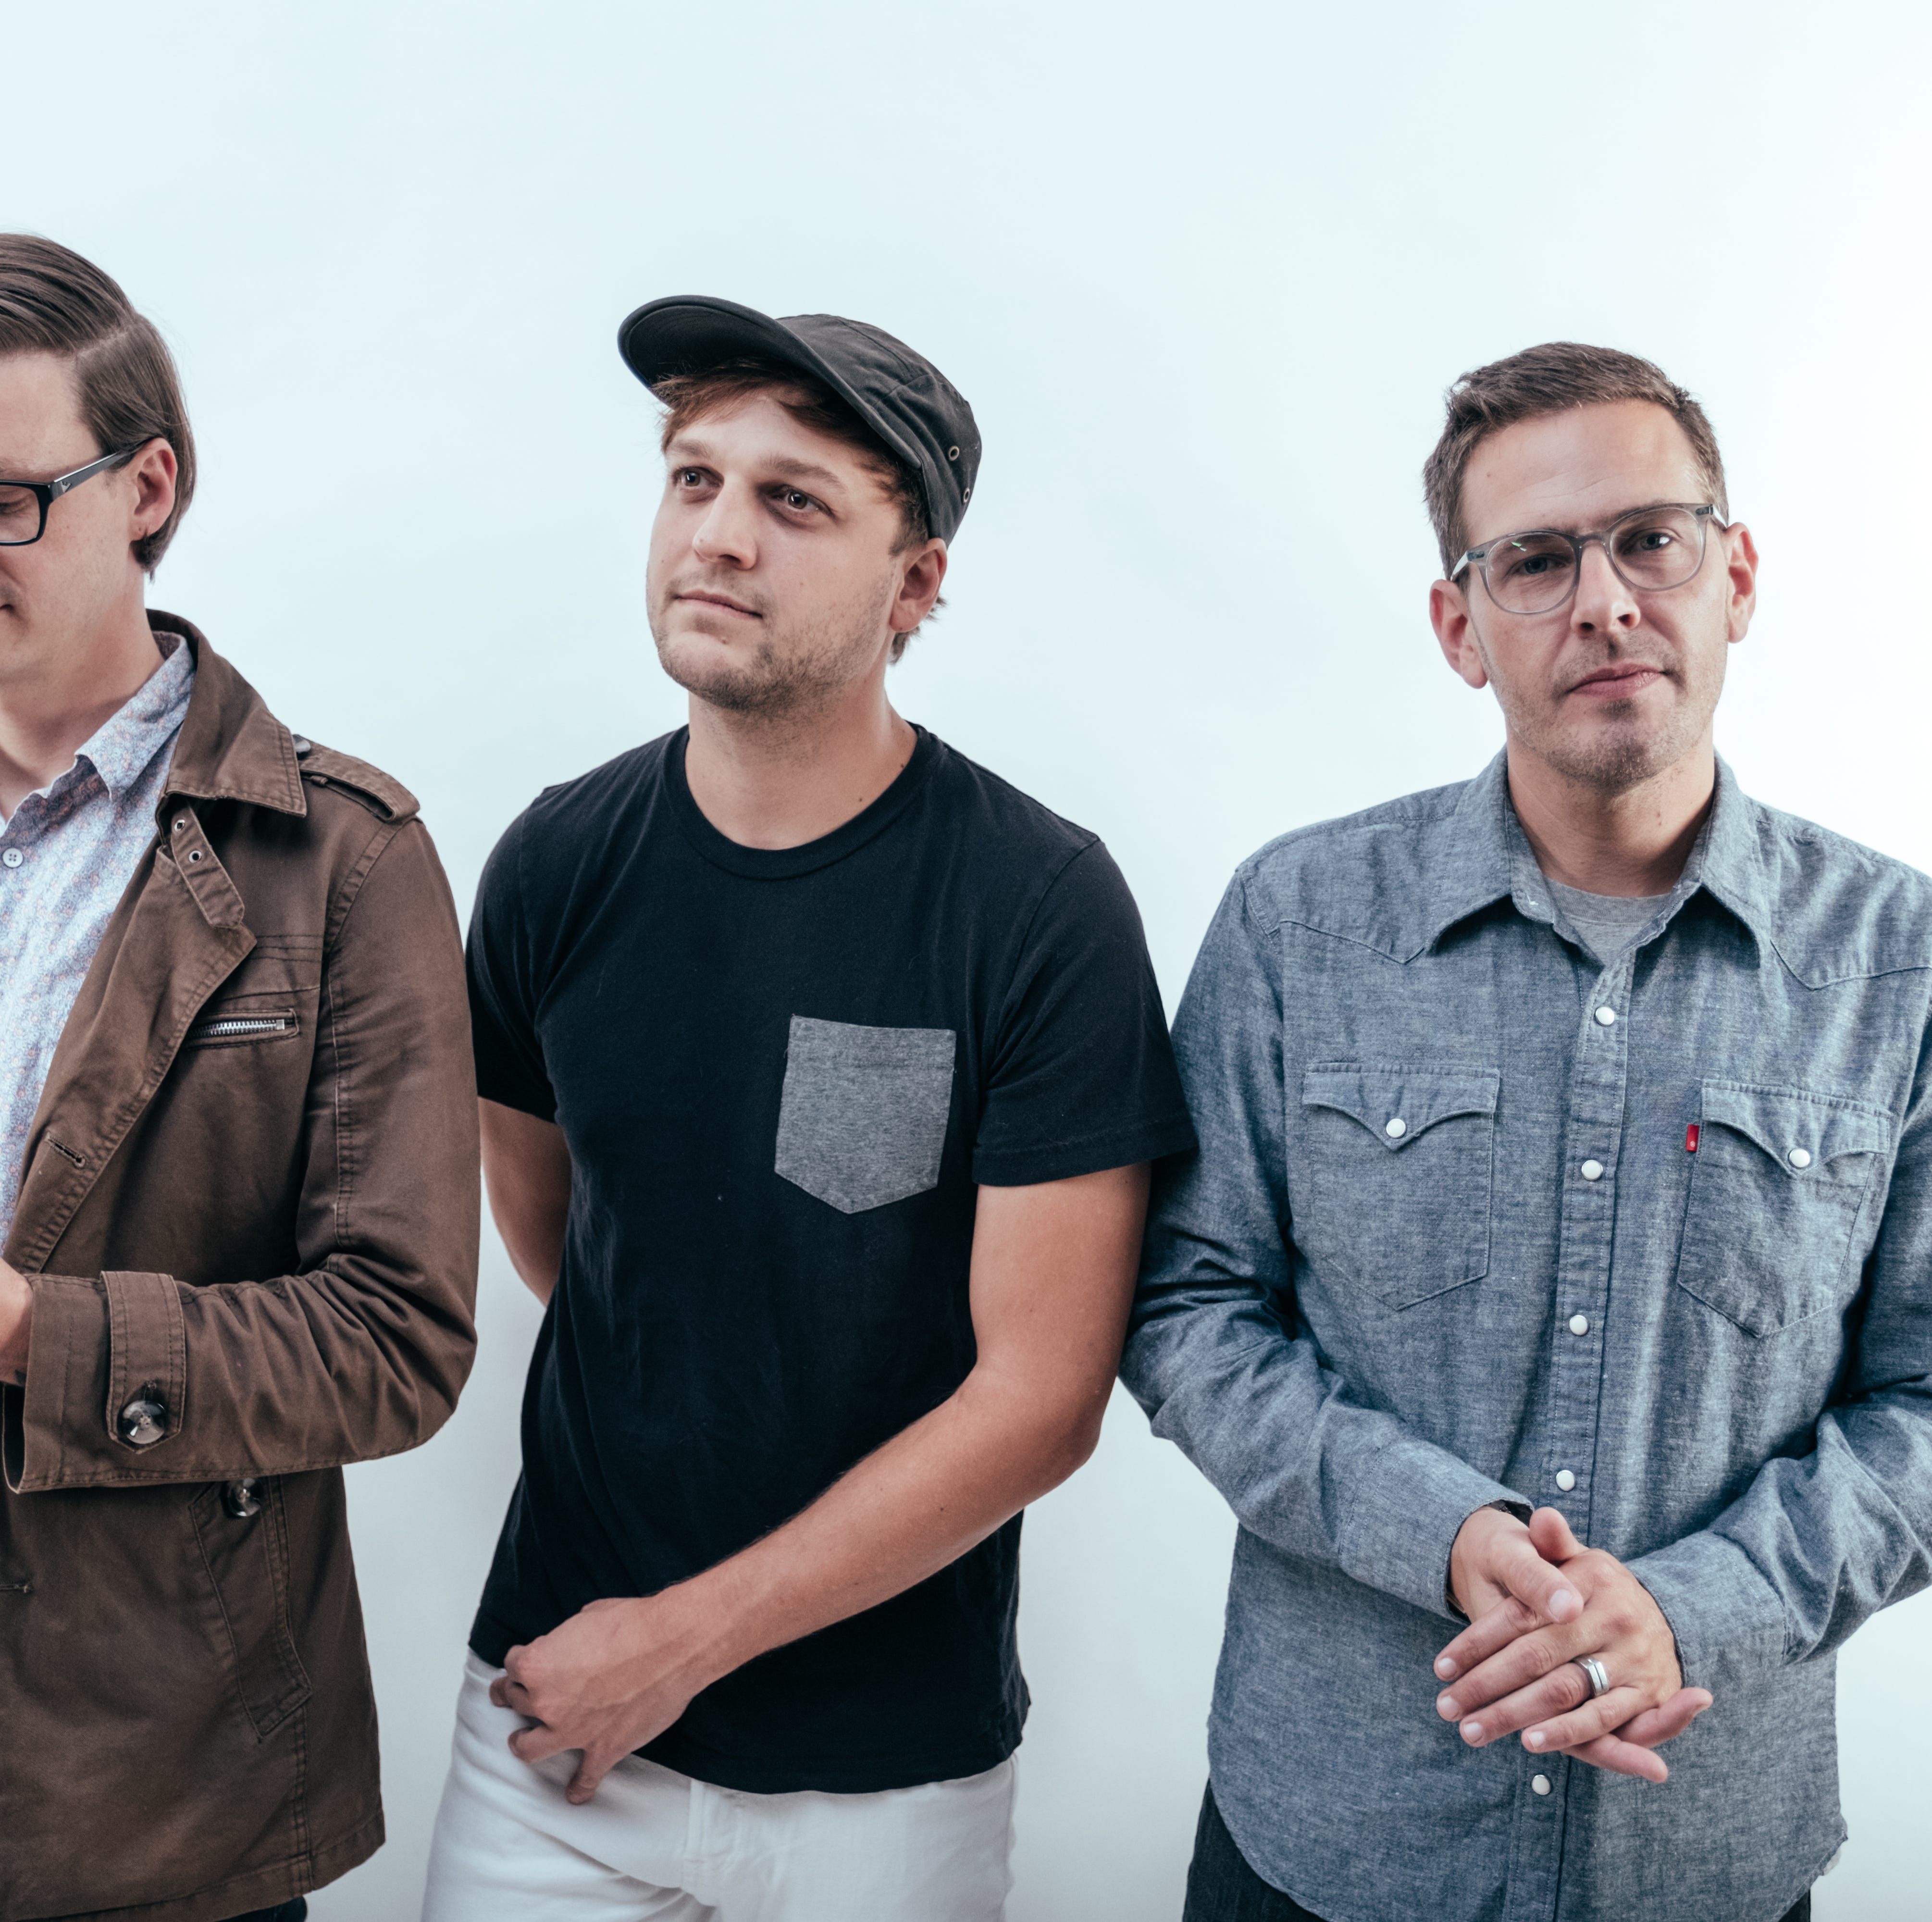 Soulcrate members launch new band: OK, Parade. Hear their first track.